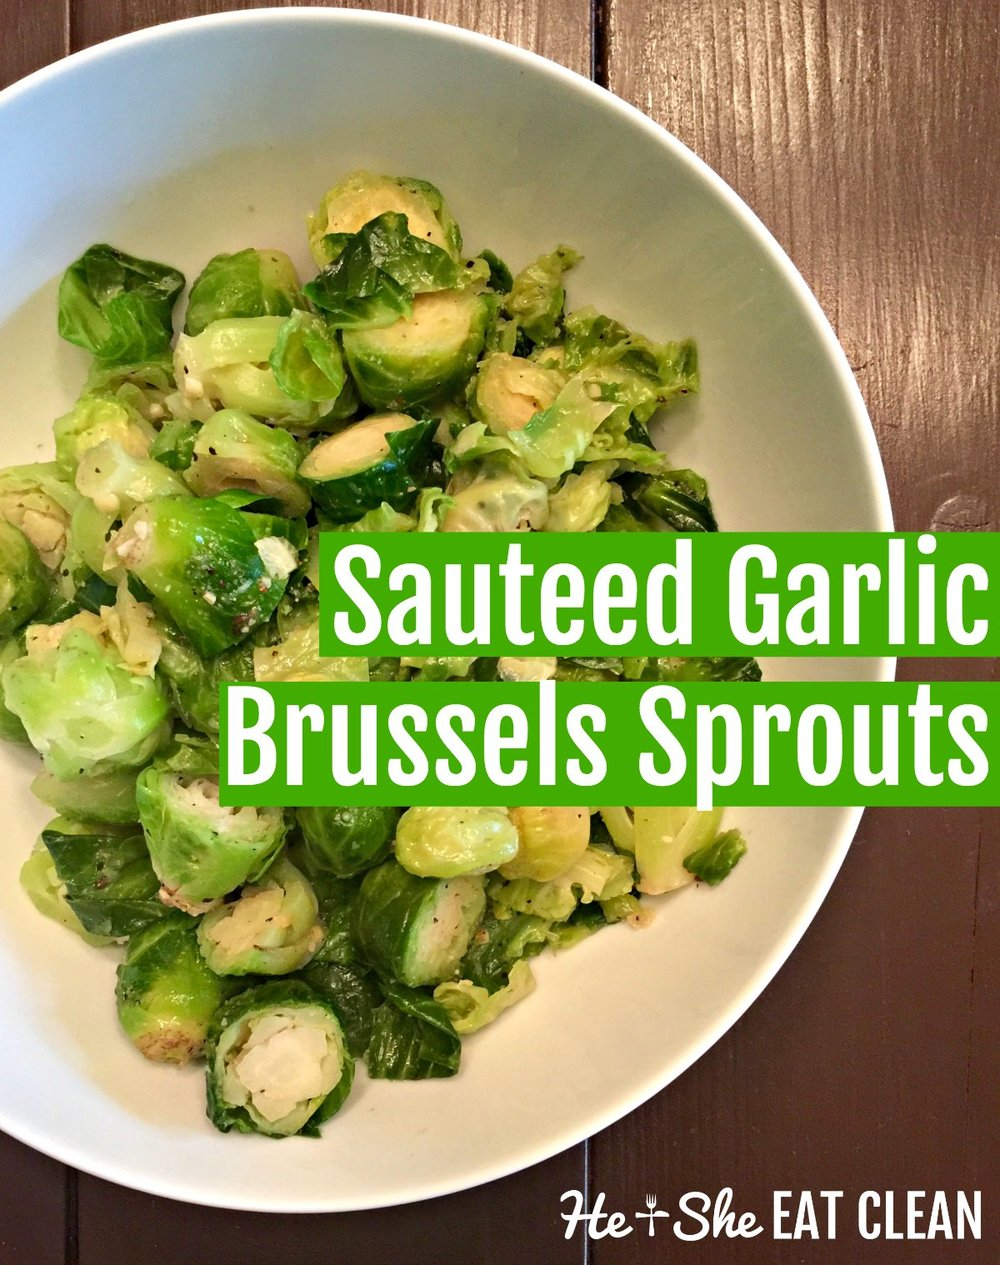 Sauteed Garlic Brussels Sprouts